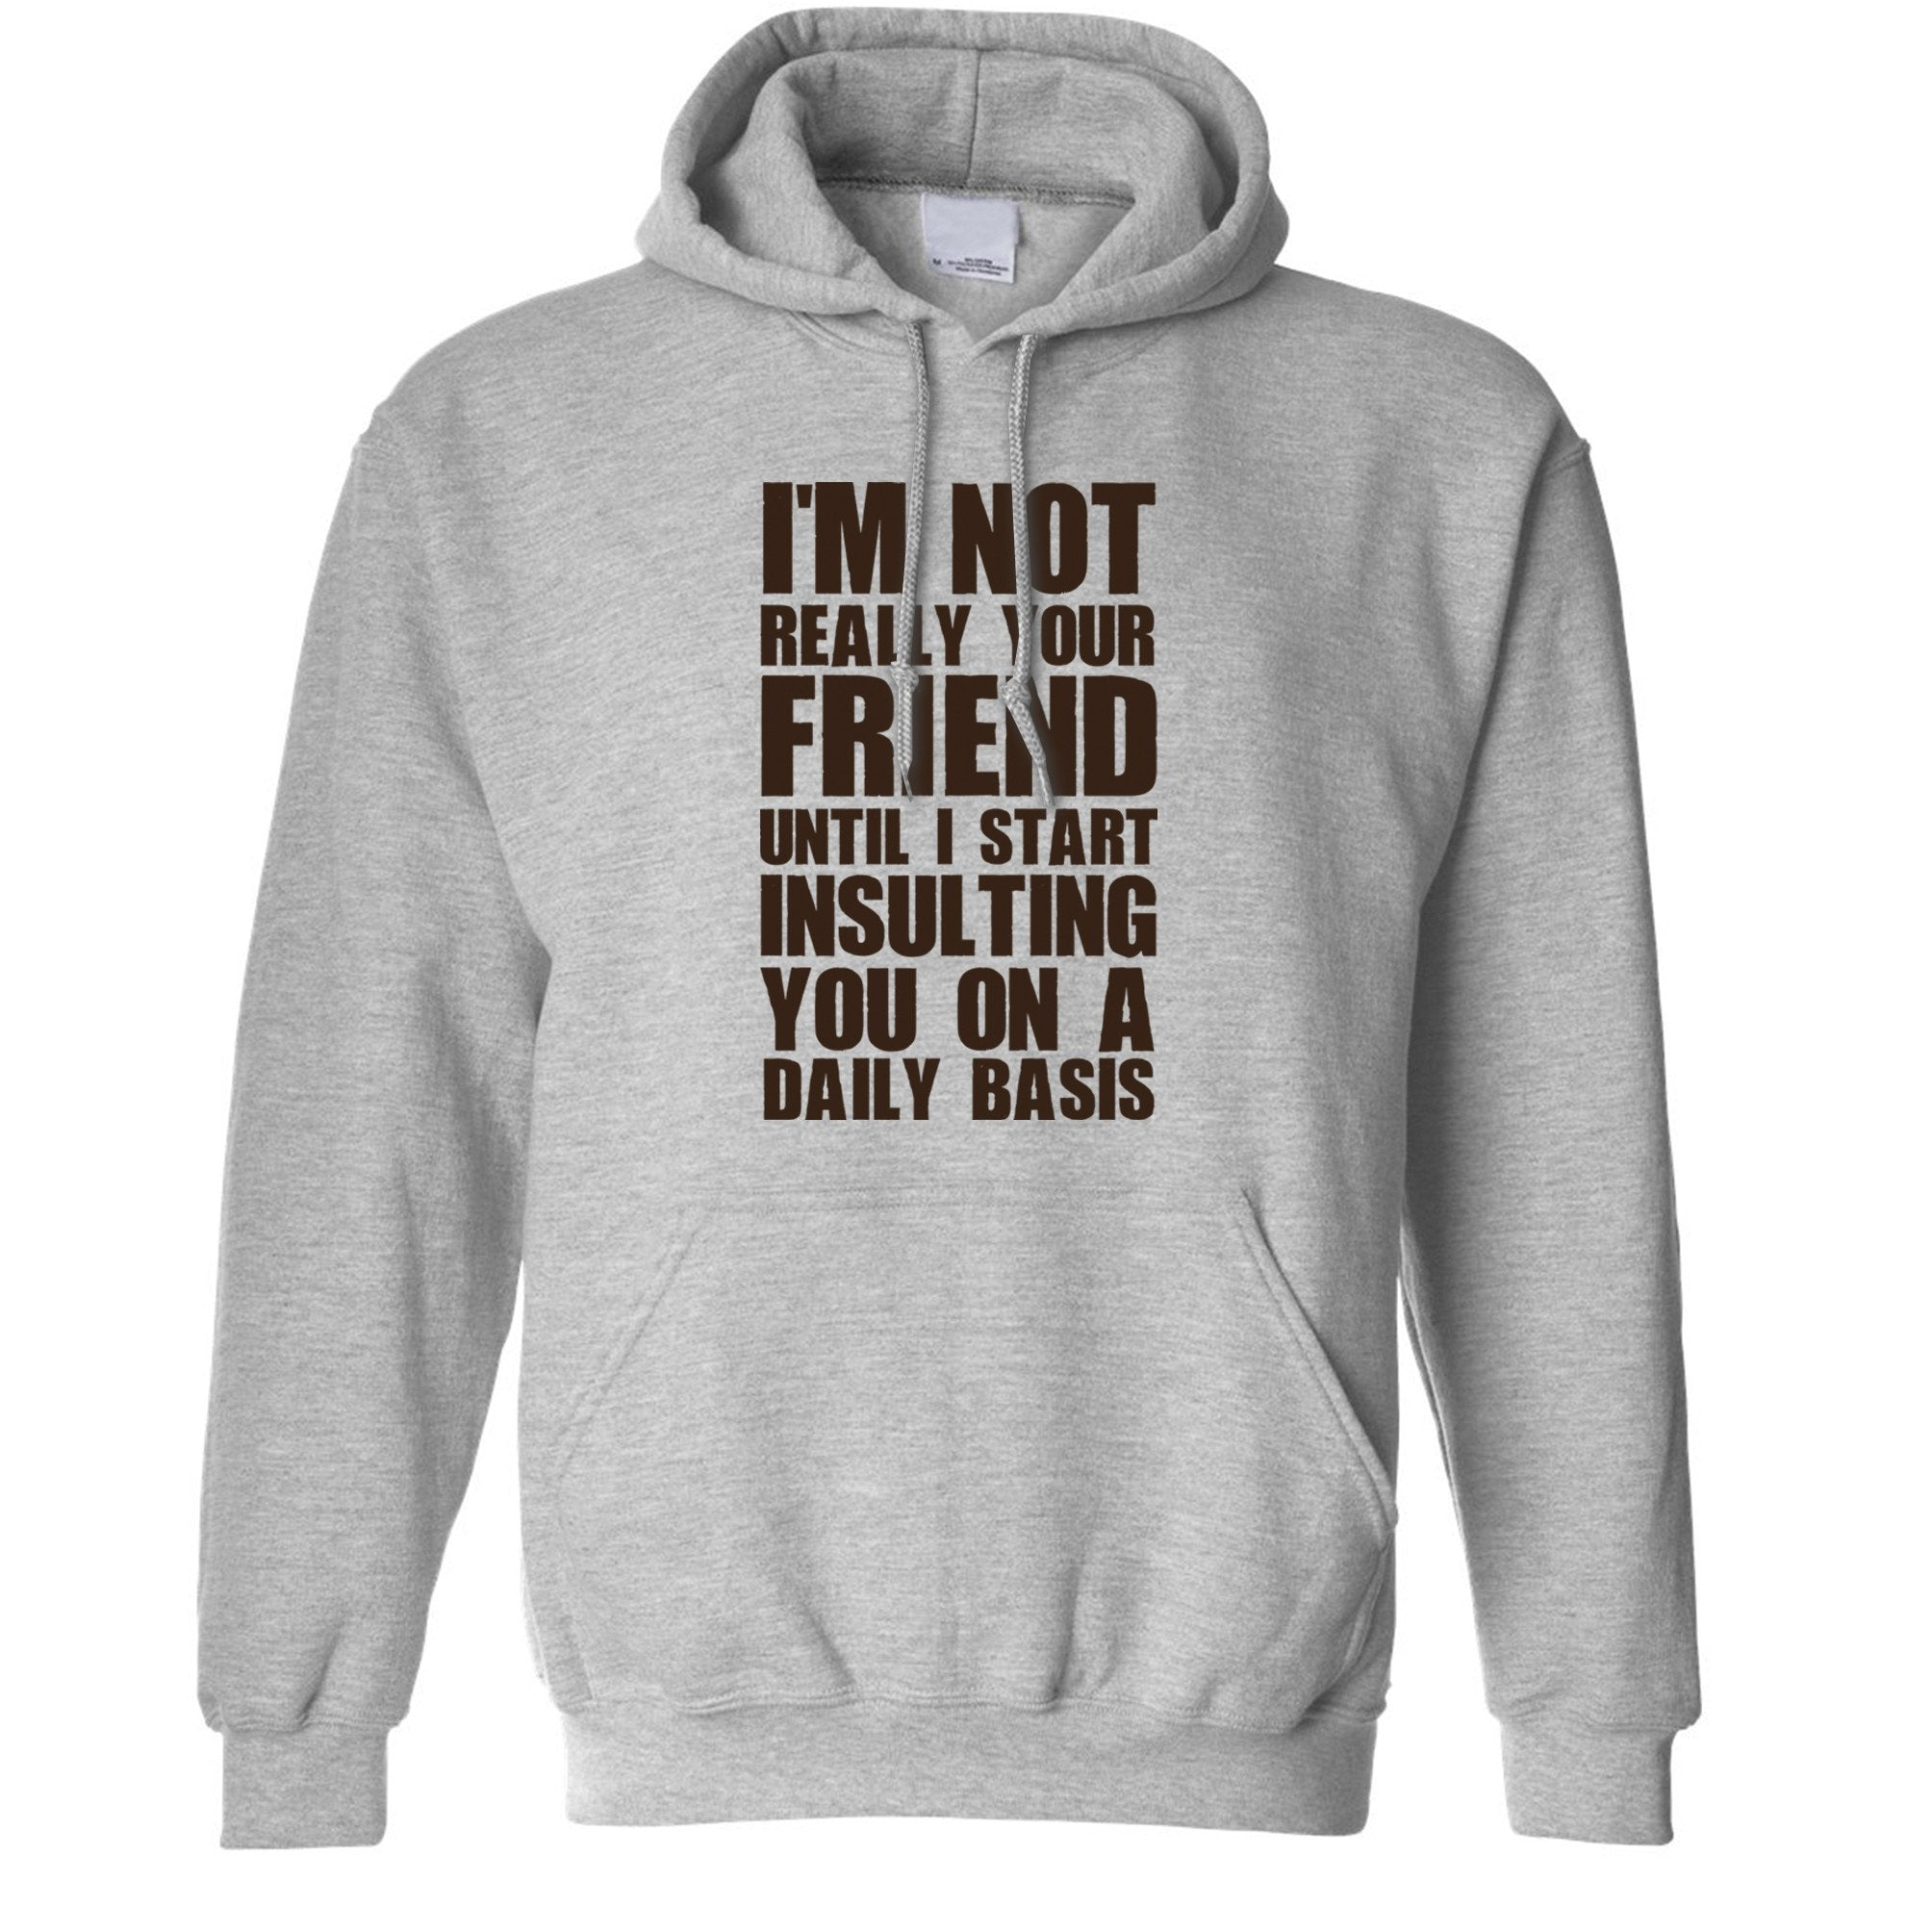 Novelty Hoodie I'm Not Your Friend Until I Insult You Hooded Jumper